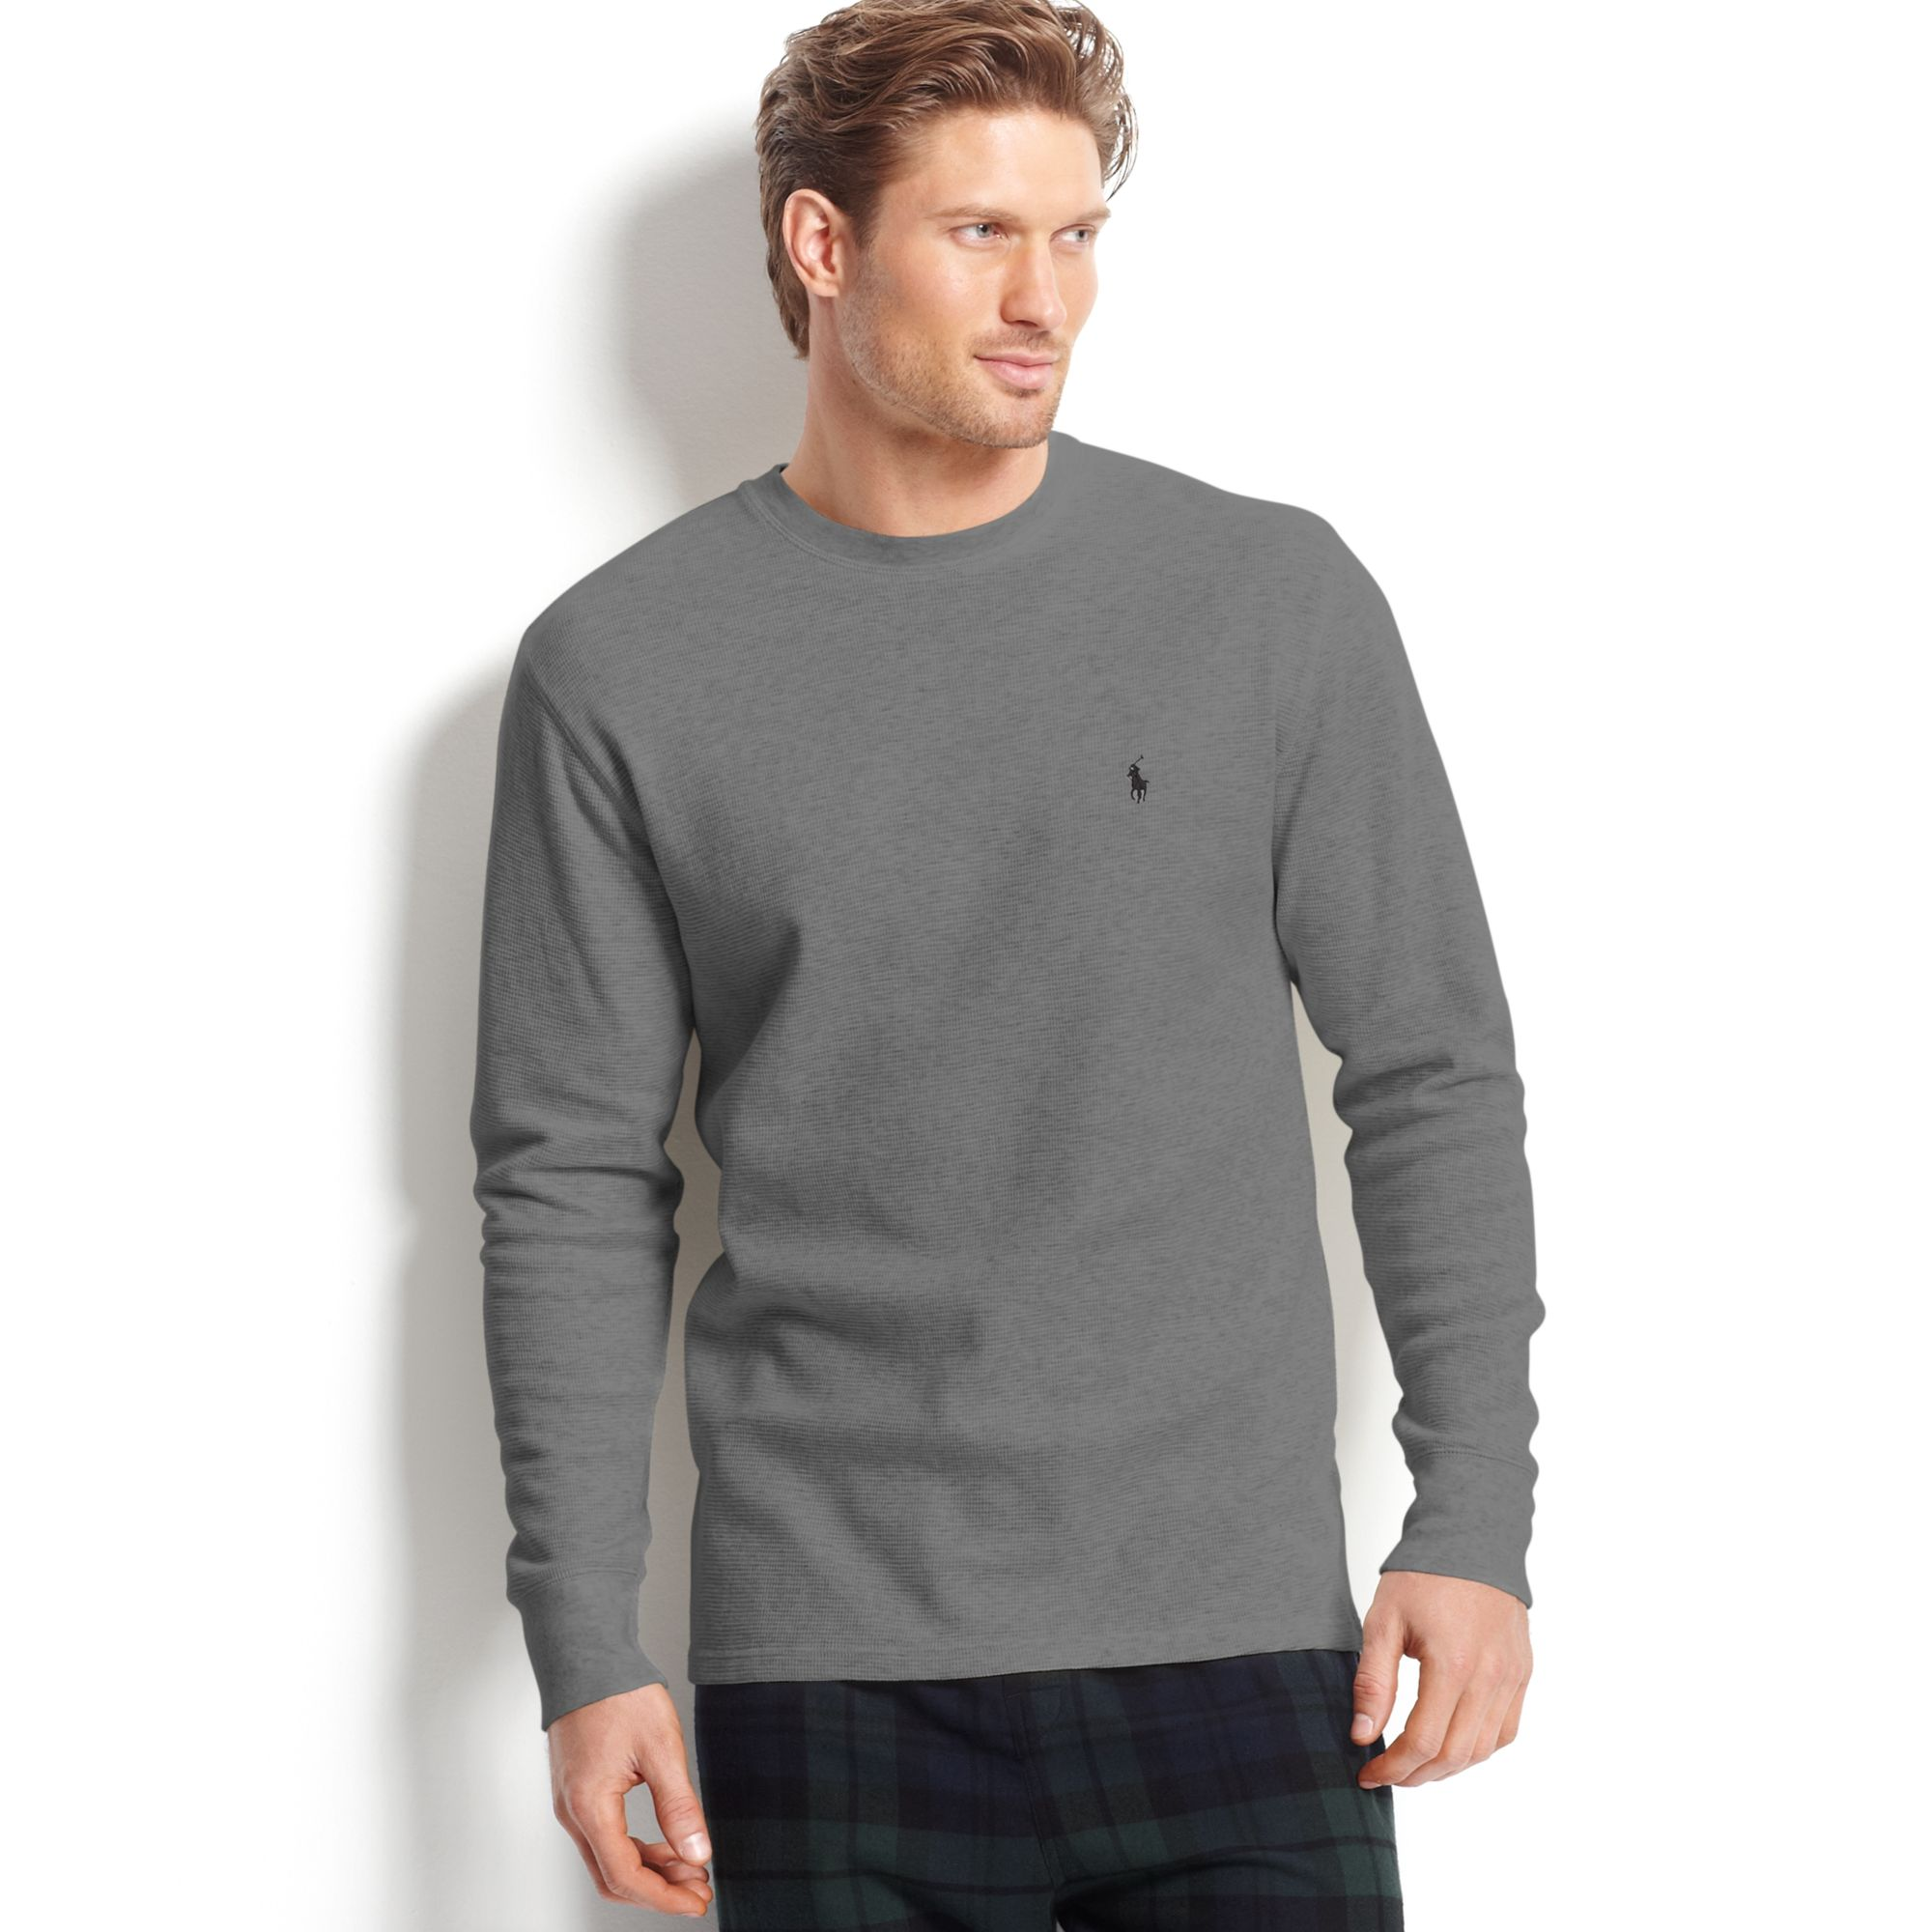 45cc26c1 Ralph Lauren Long Sleeve Crew Neck Waffle Knit Thermal Tshirt in ...